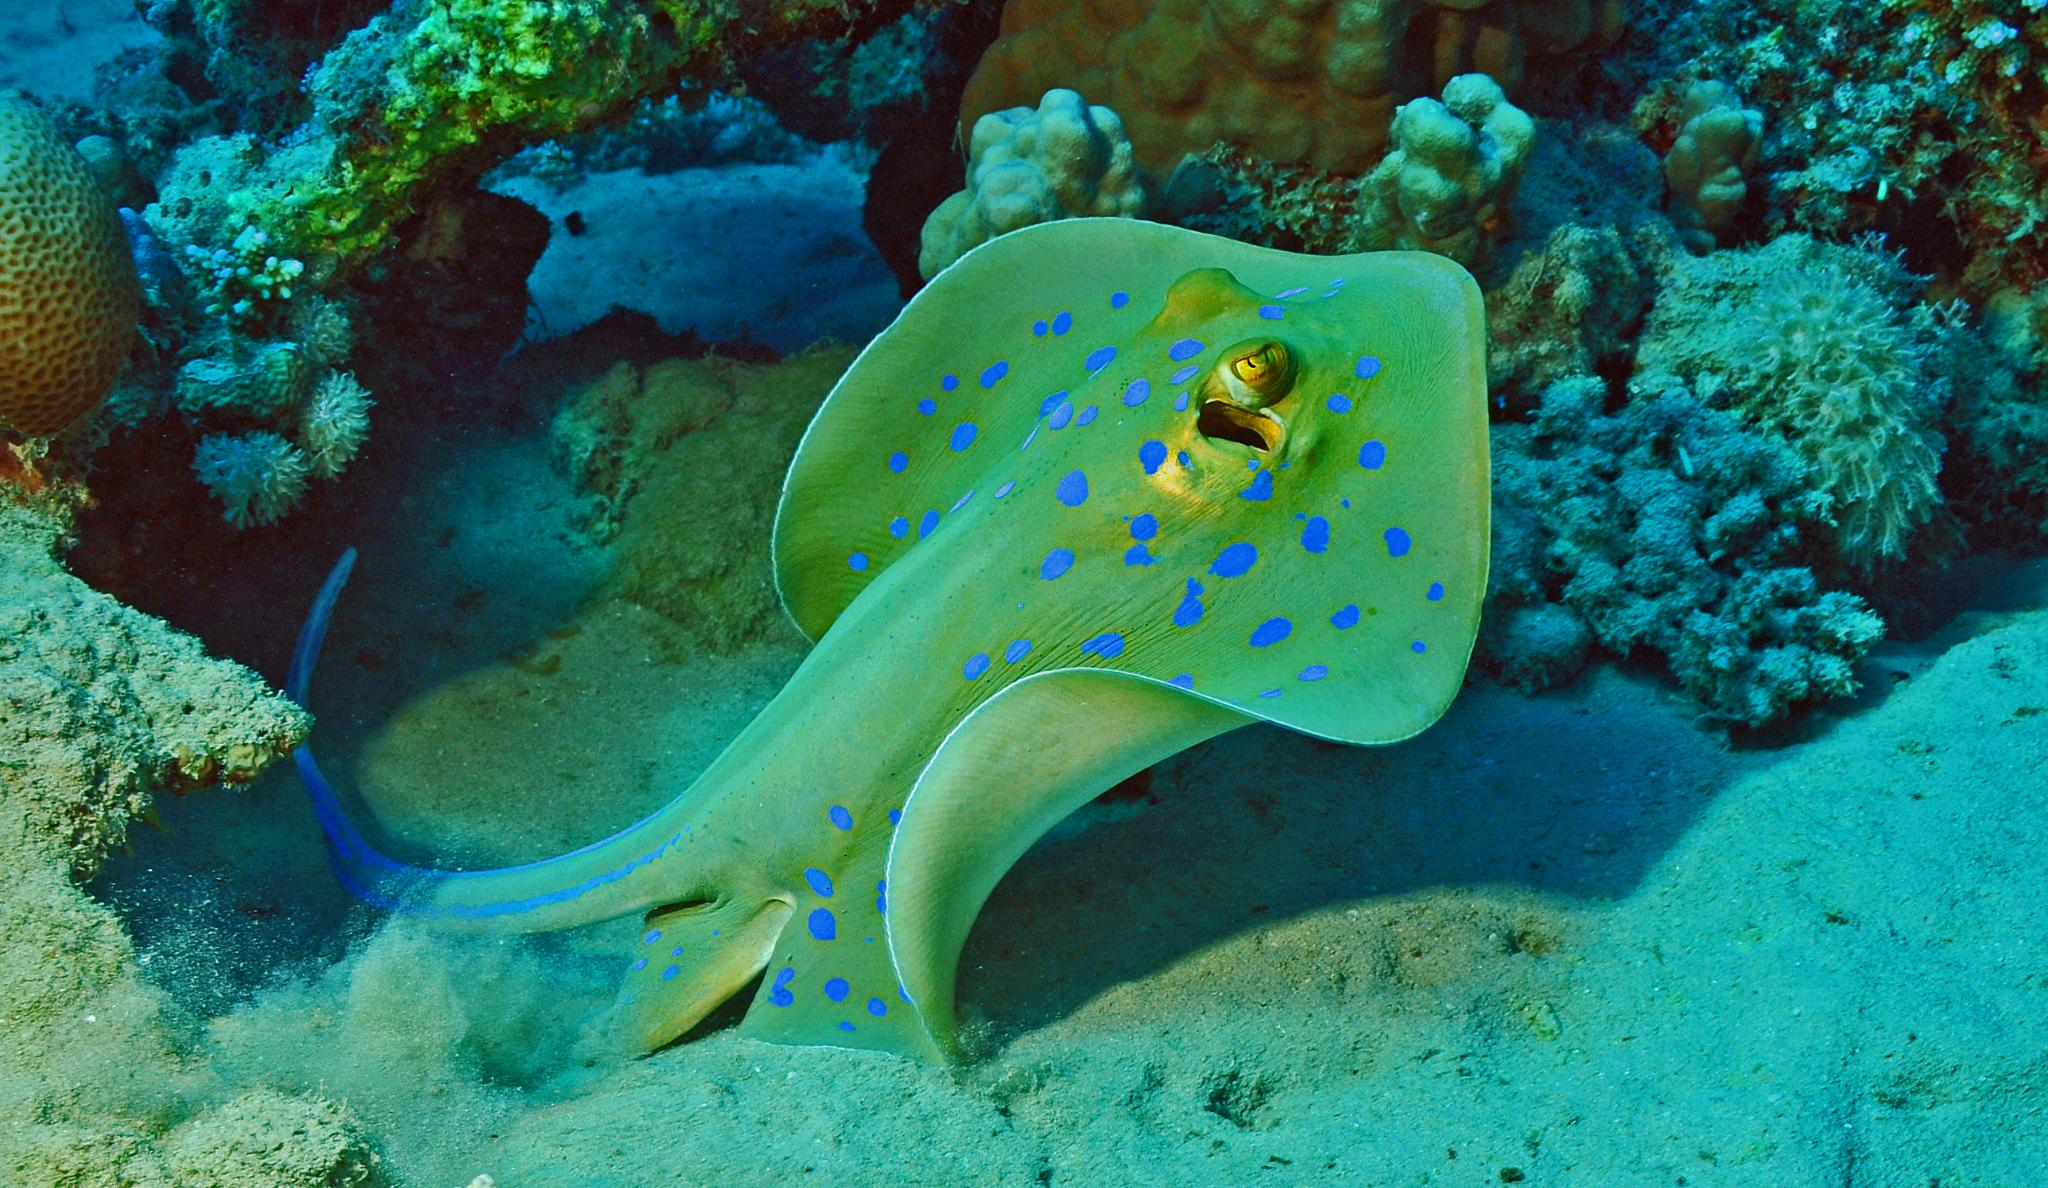 Blue spotted stingray by Phif60